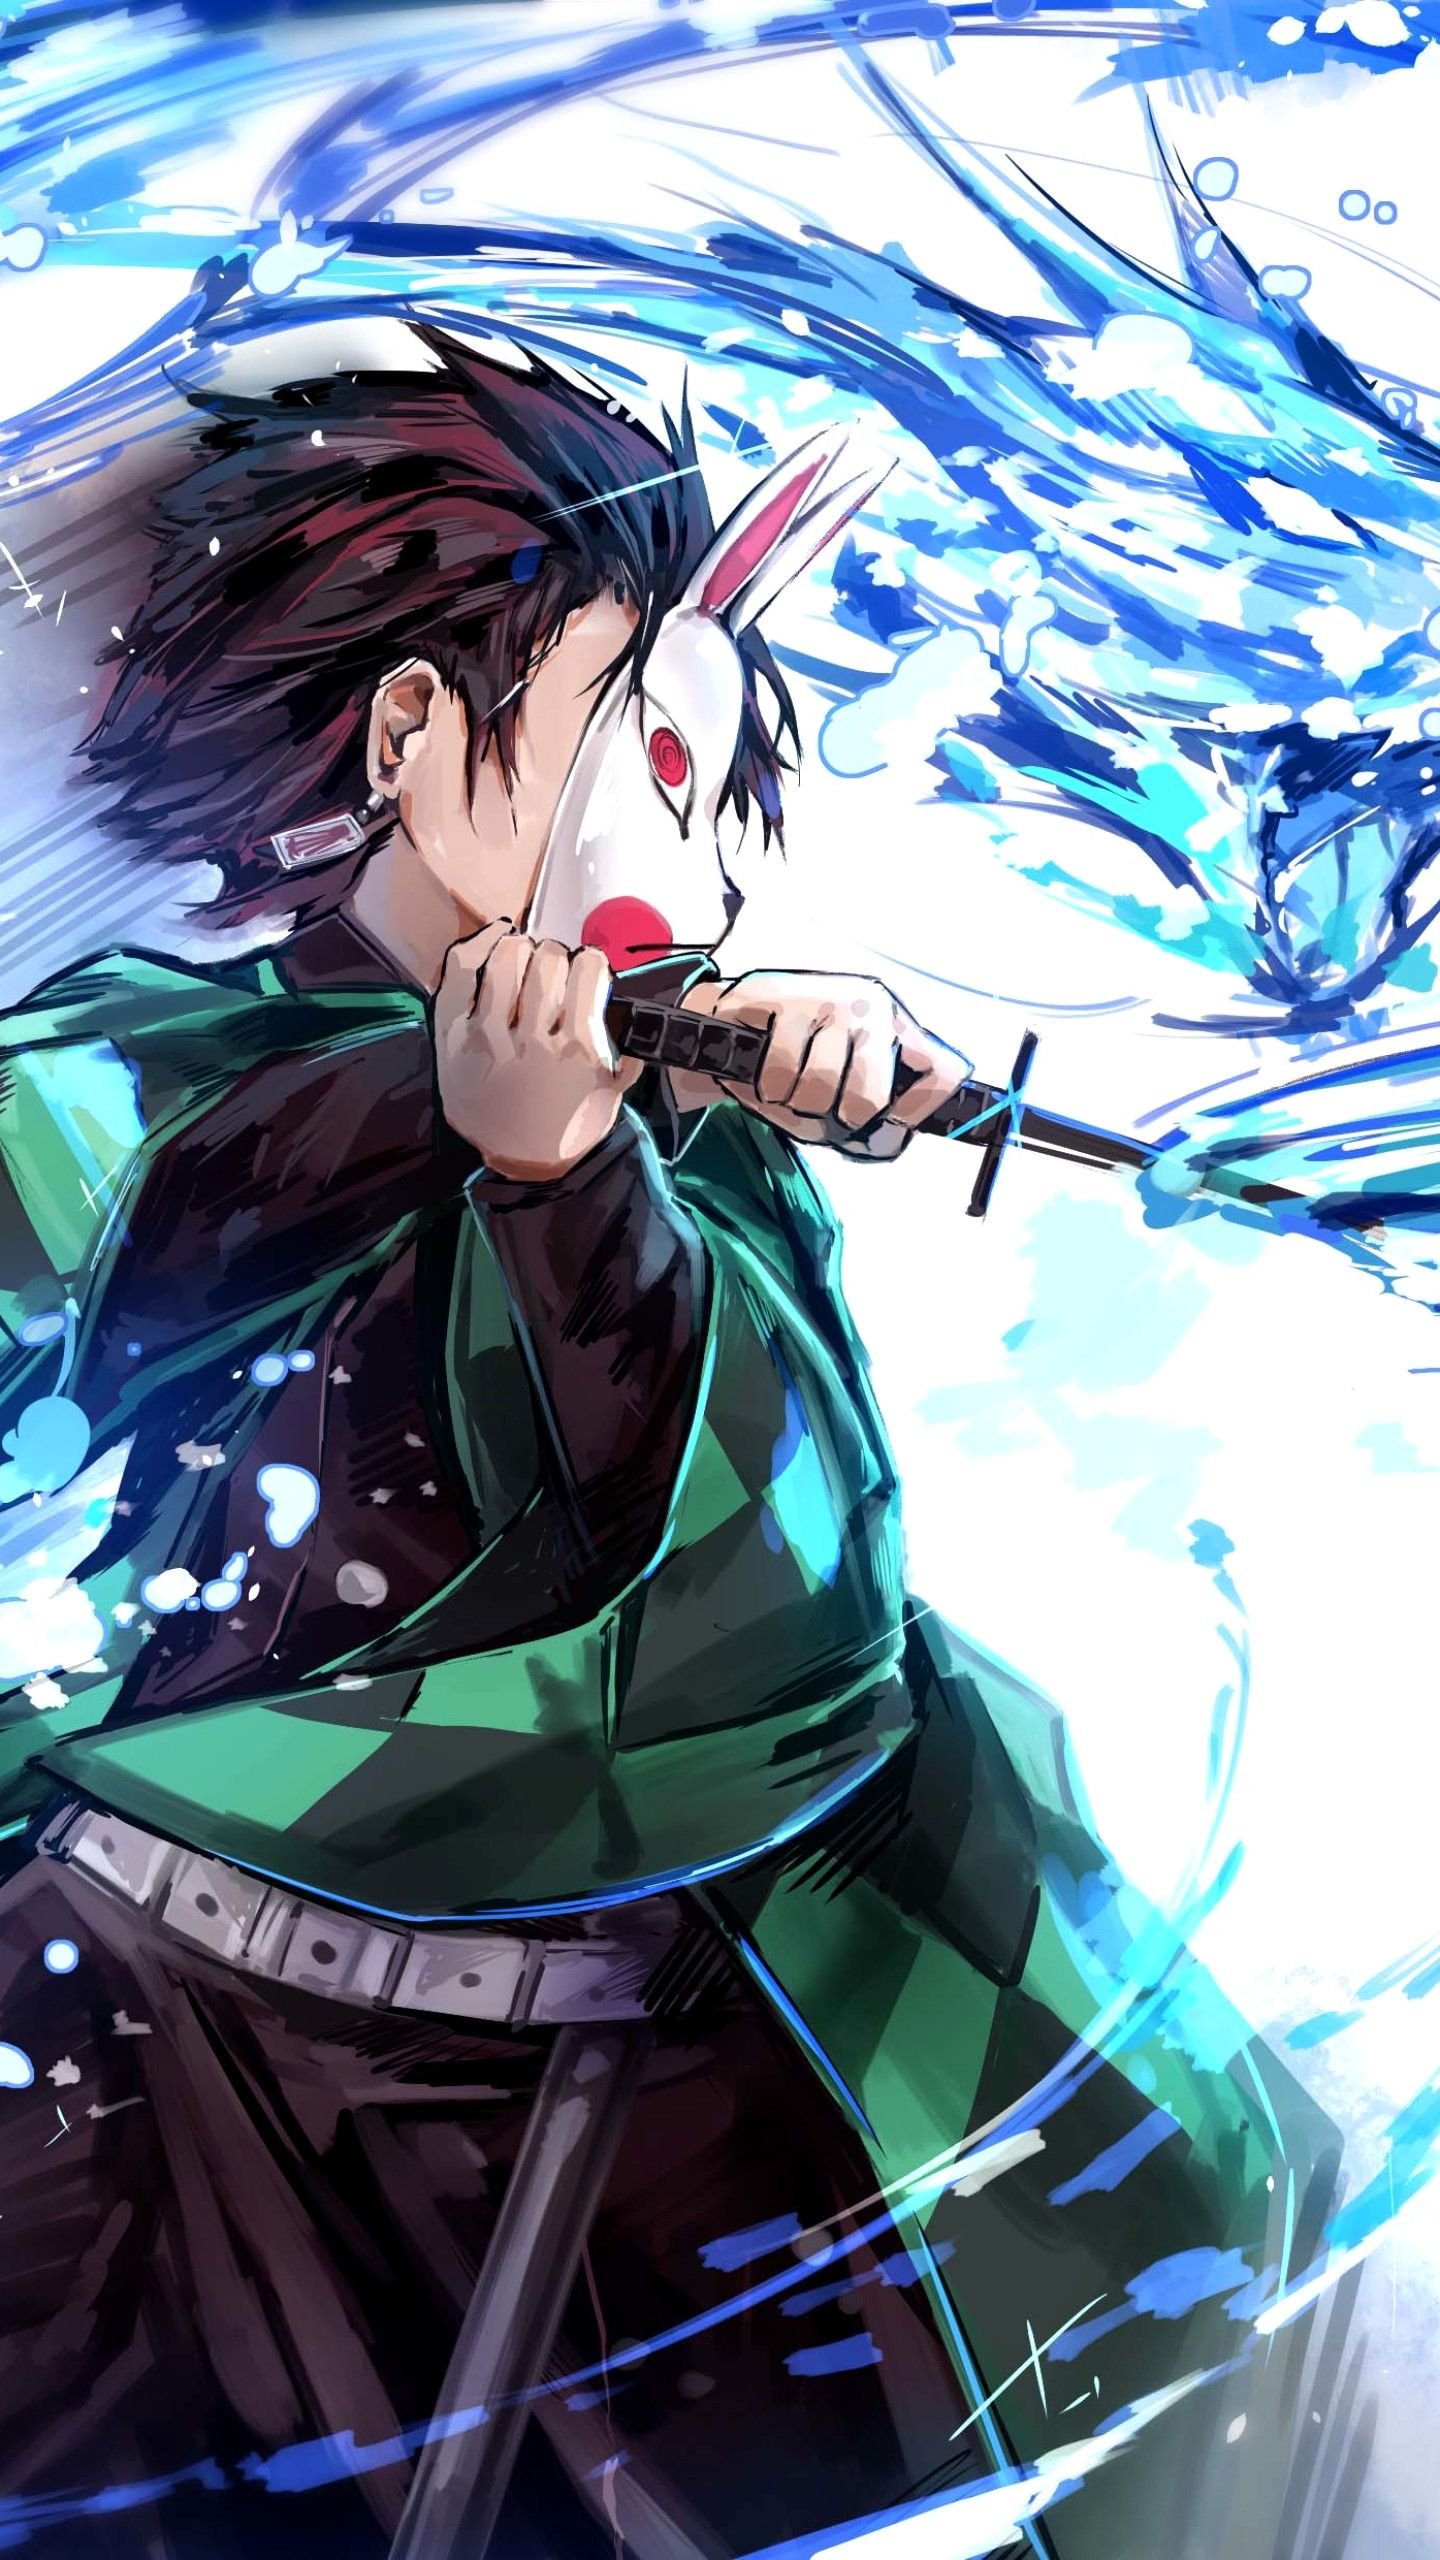 Luxury Anime Demon Slayer Kimetsu No Yaiba 1440×2560